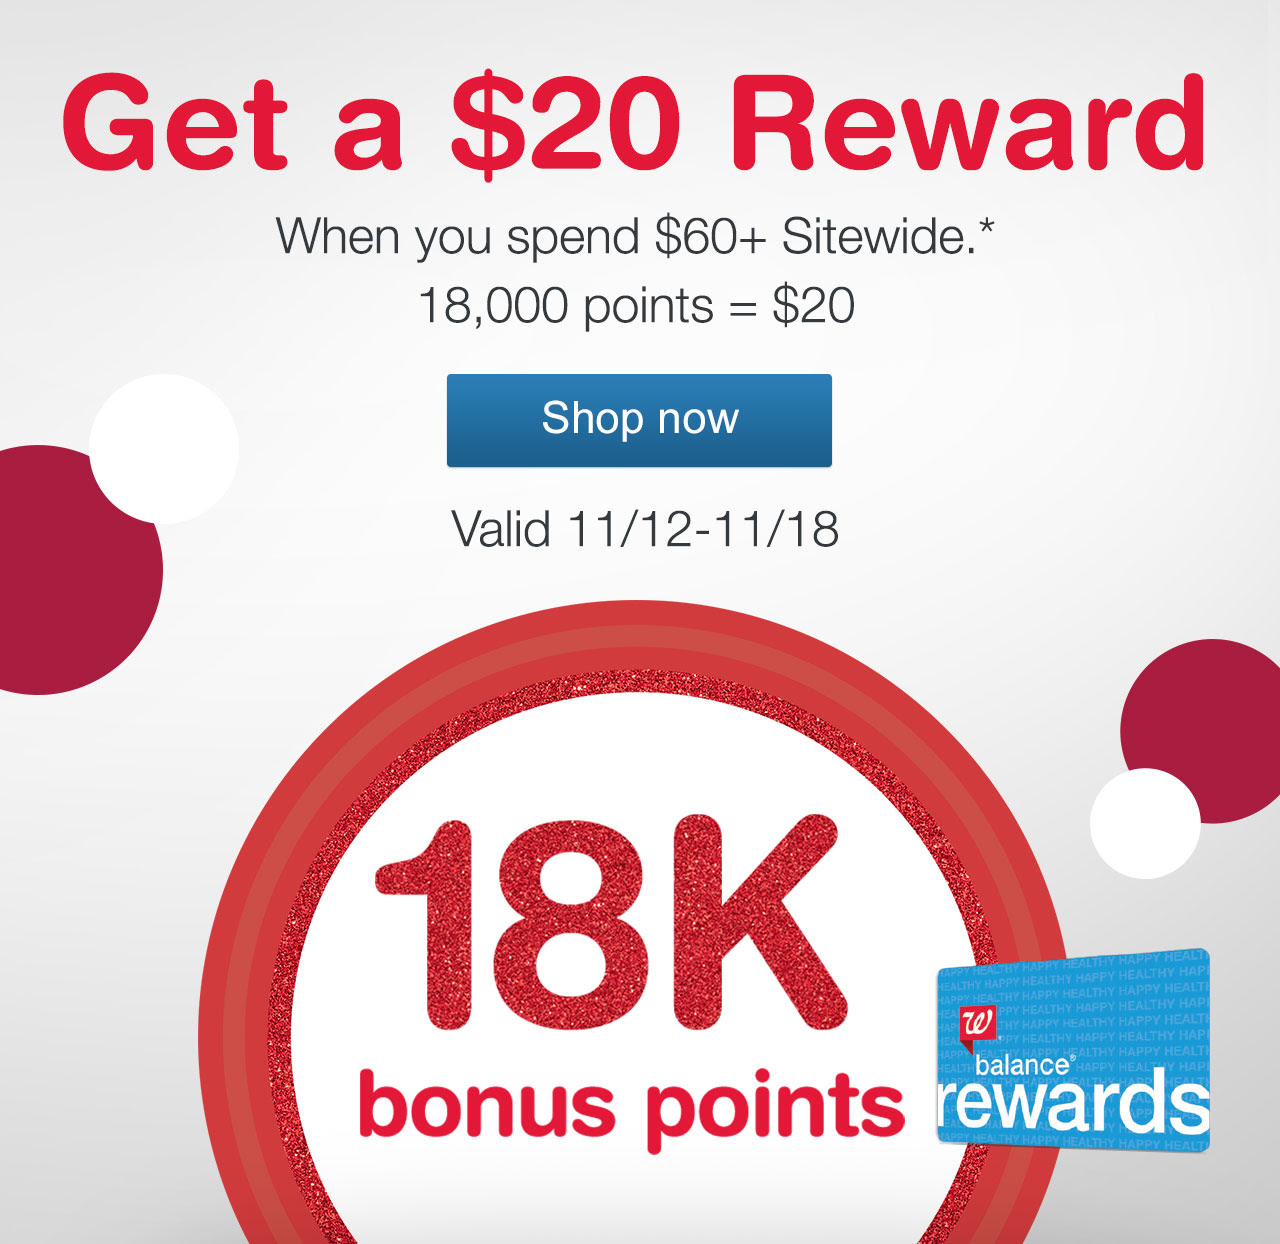 18K bonus points - Get a $20 Reward when you spend $60+ Sitewide. 18,000 points = $20. Valid 11/12-11/18